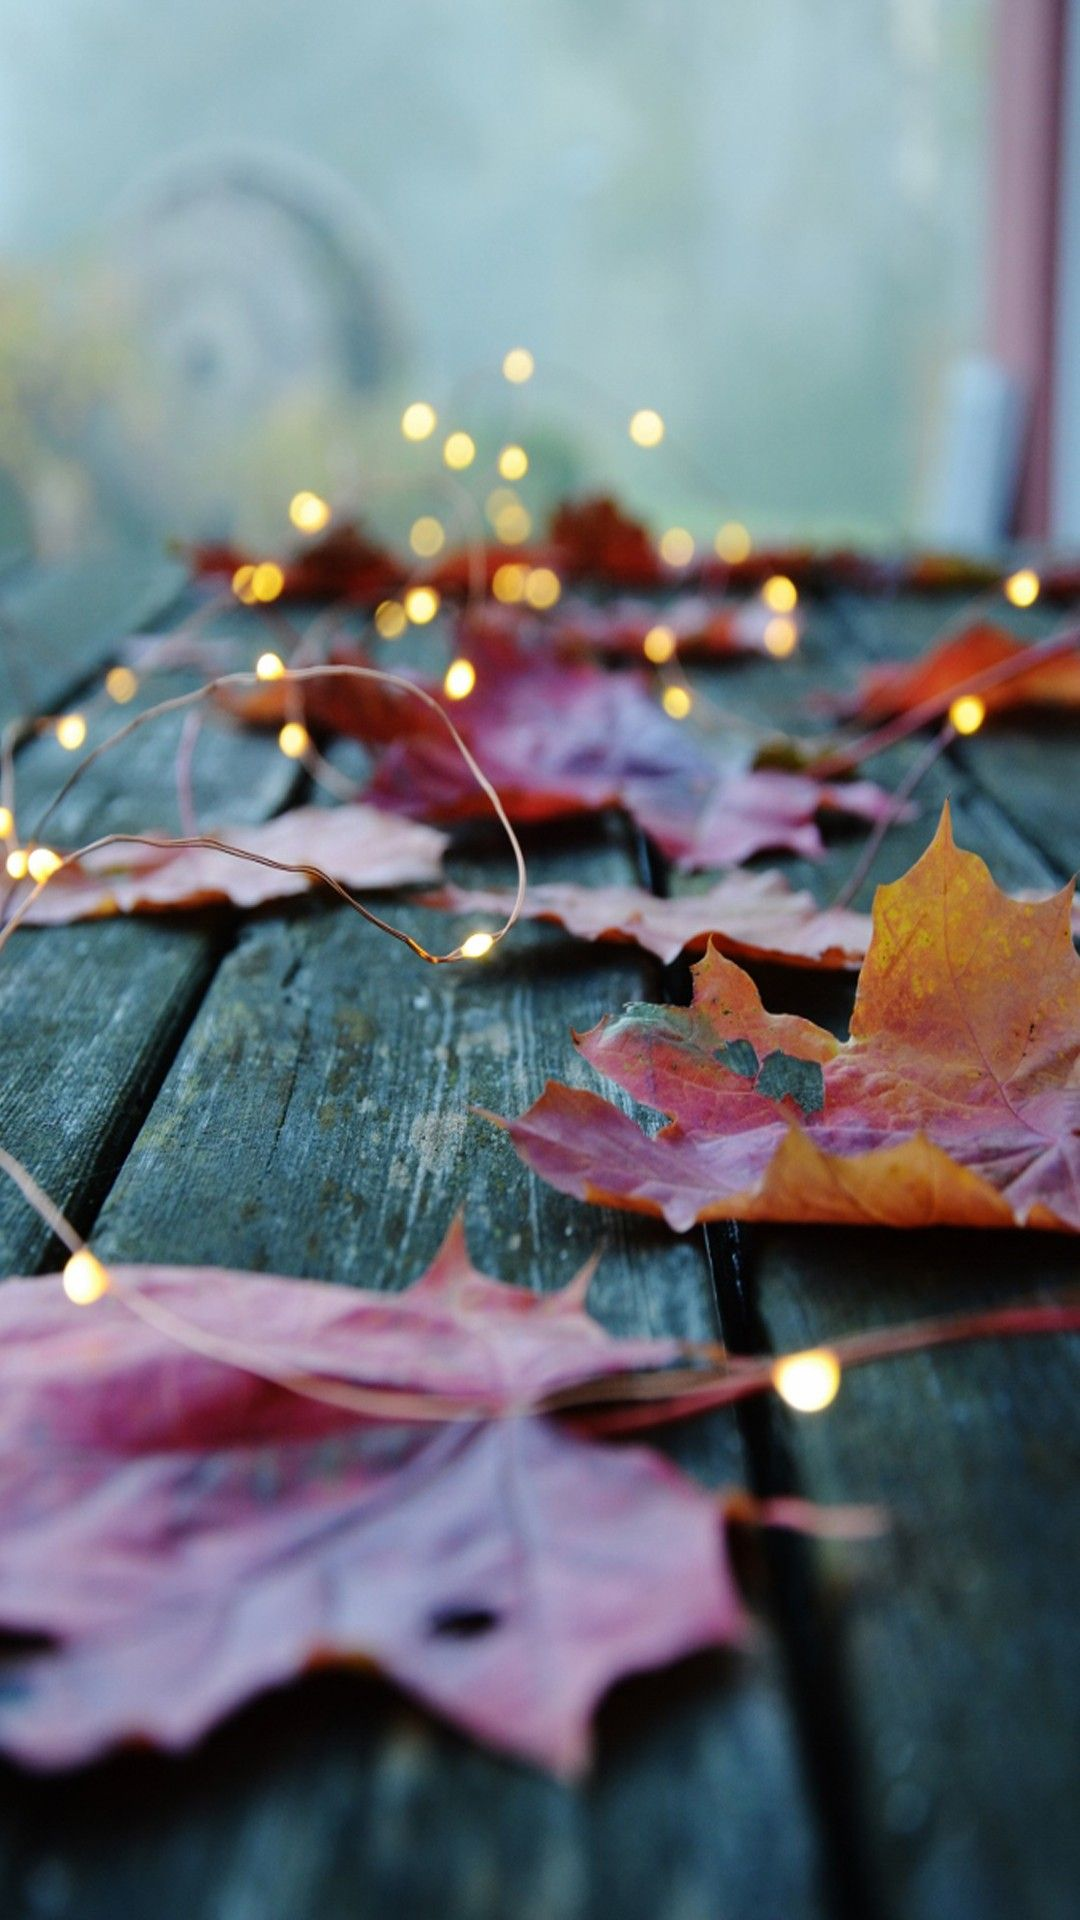 Pin by Leon M on Cool Fall wallpaper, Autumn photography